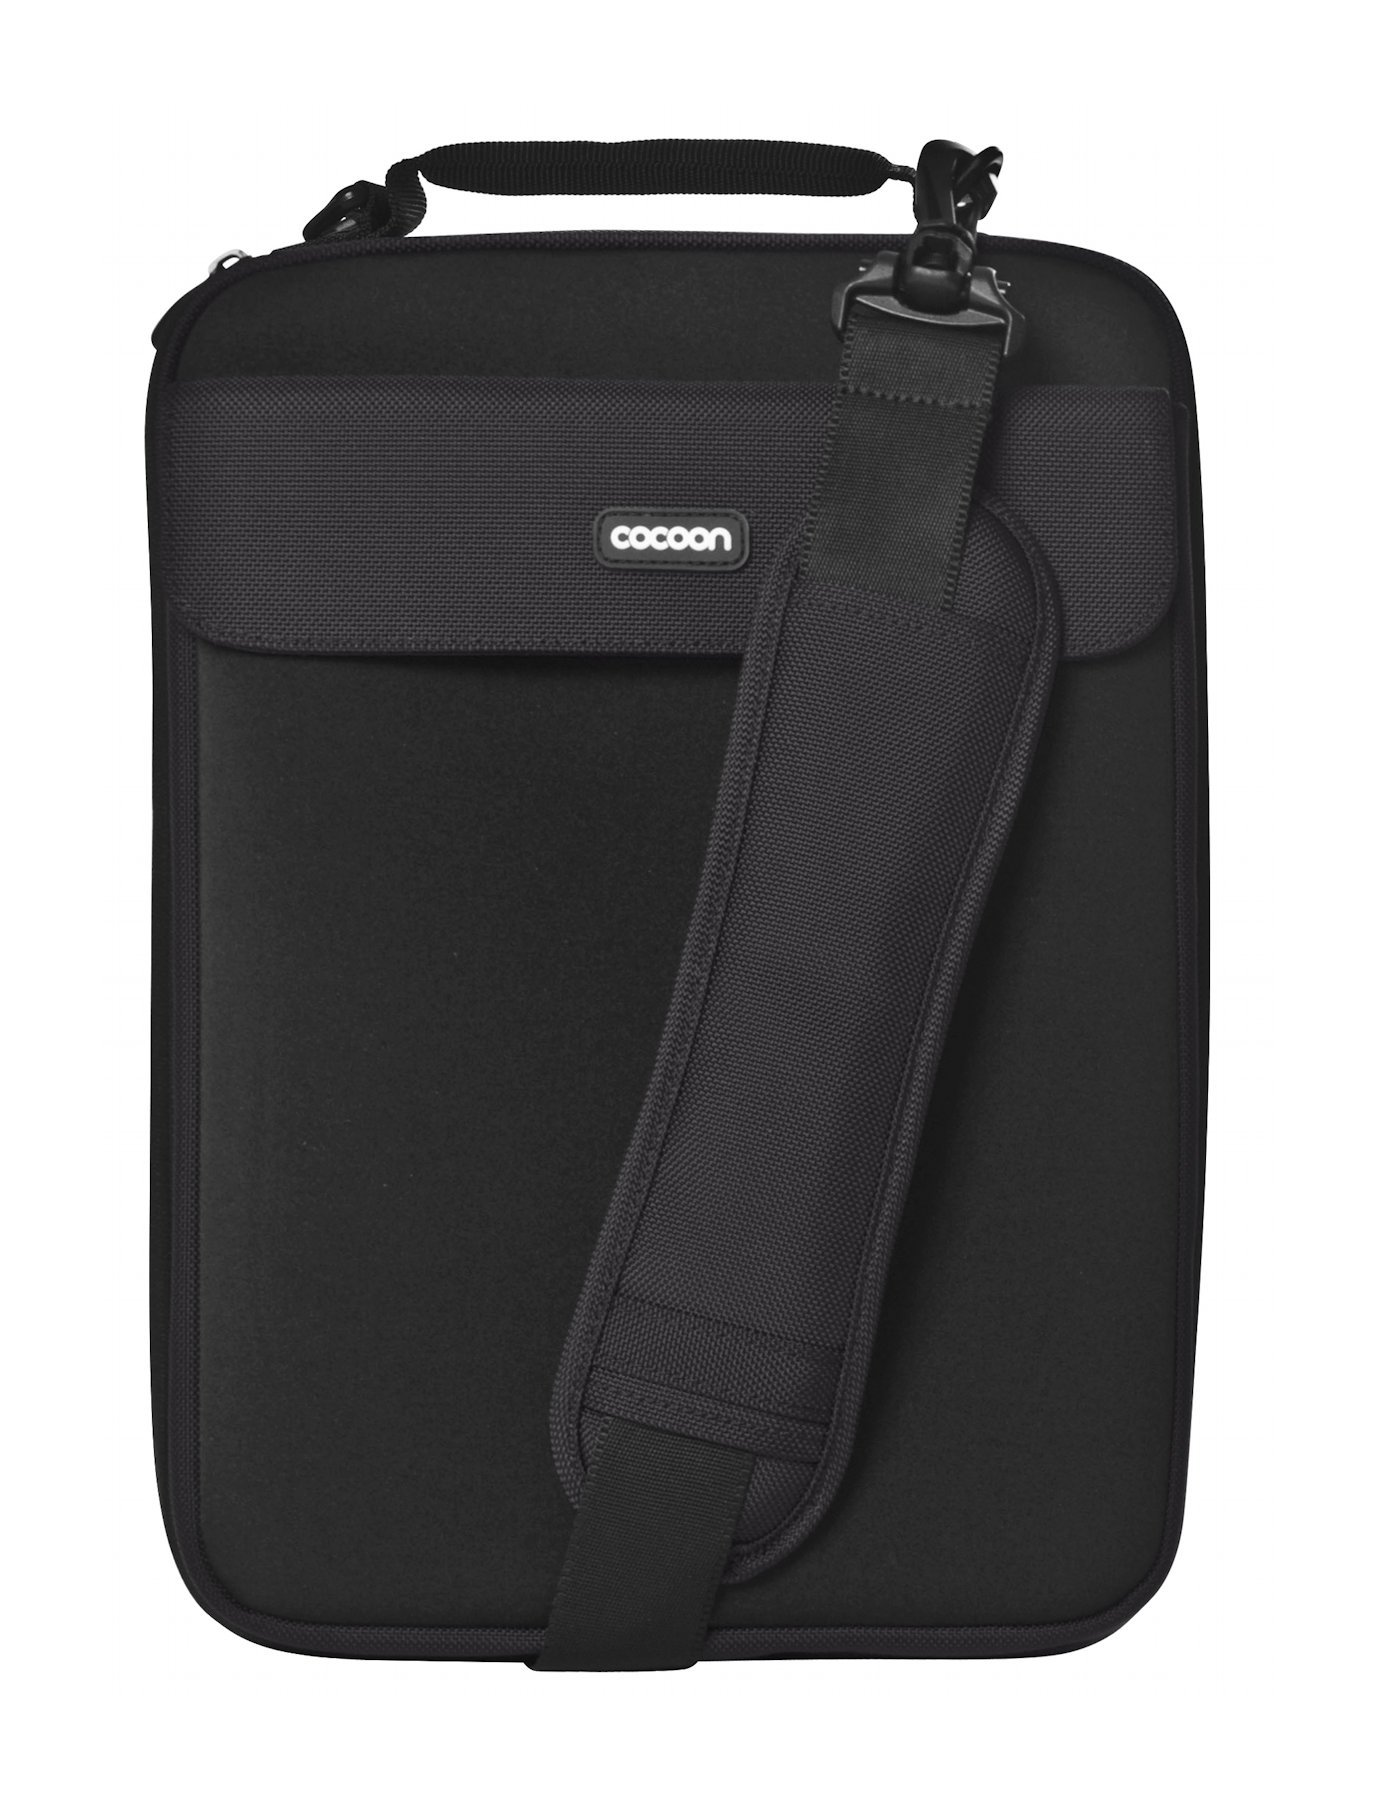 Cocoon CLS358BY Neoprene Accessory Organizer